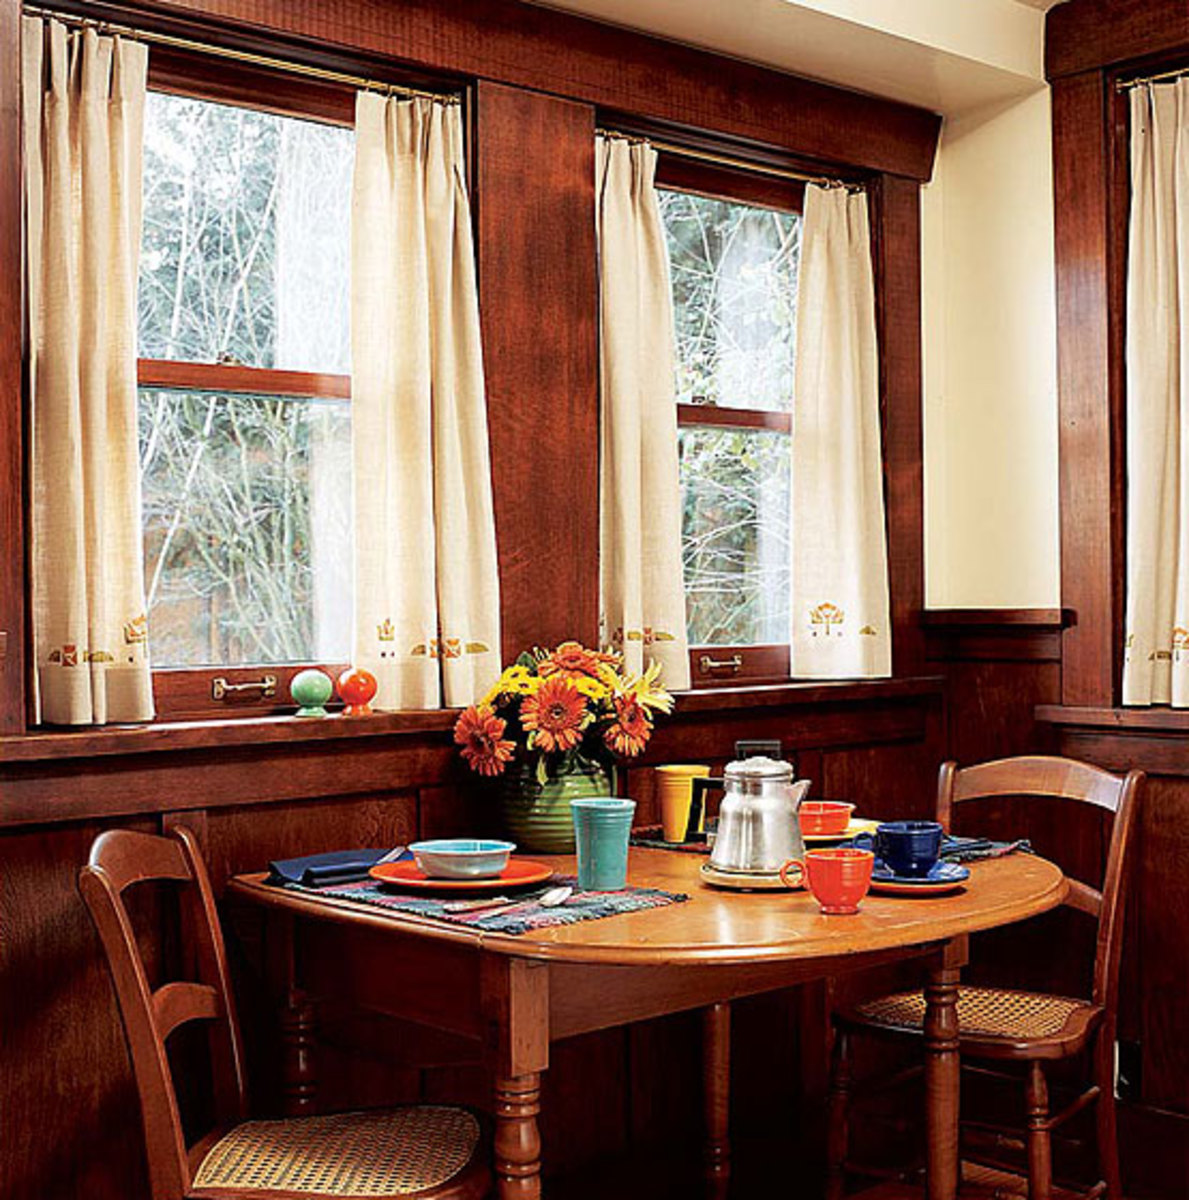 House Styles: The Craftsman Bungalow - Design for the Arts ...